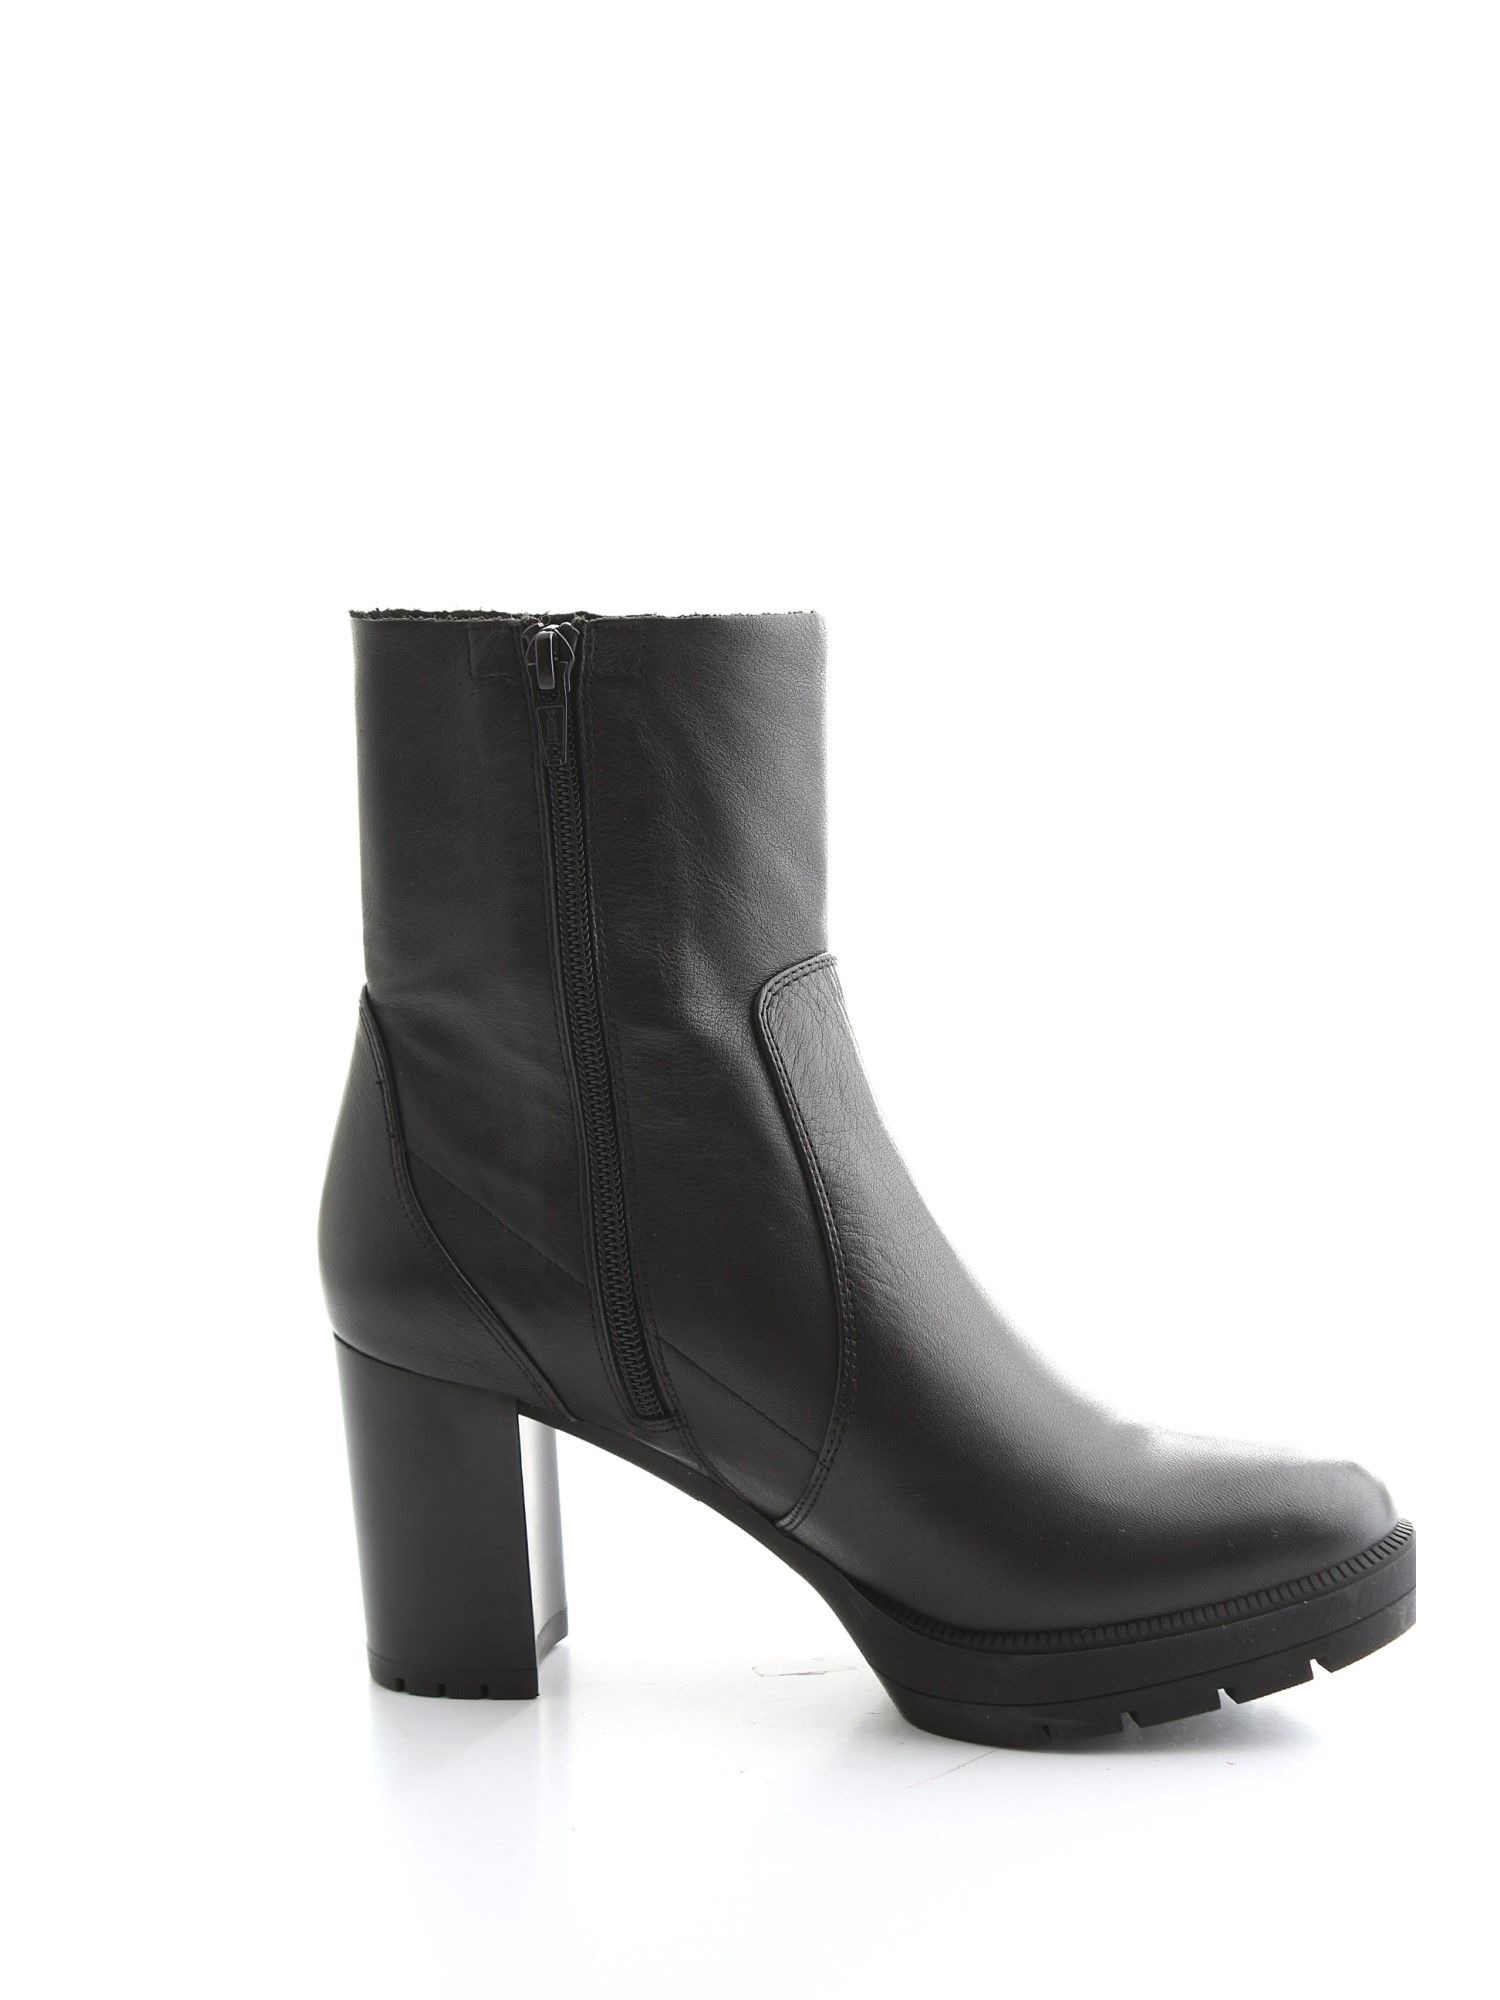 Unisa BLACK LEATHER ANKLE BOOTS